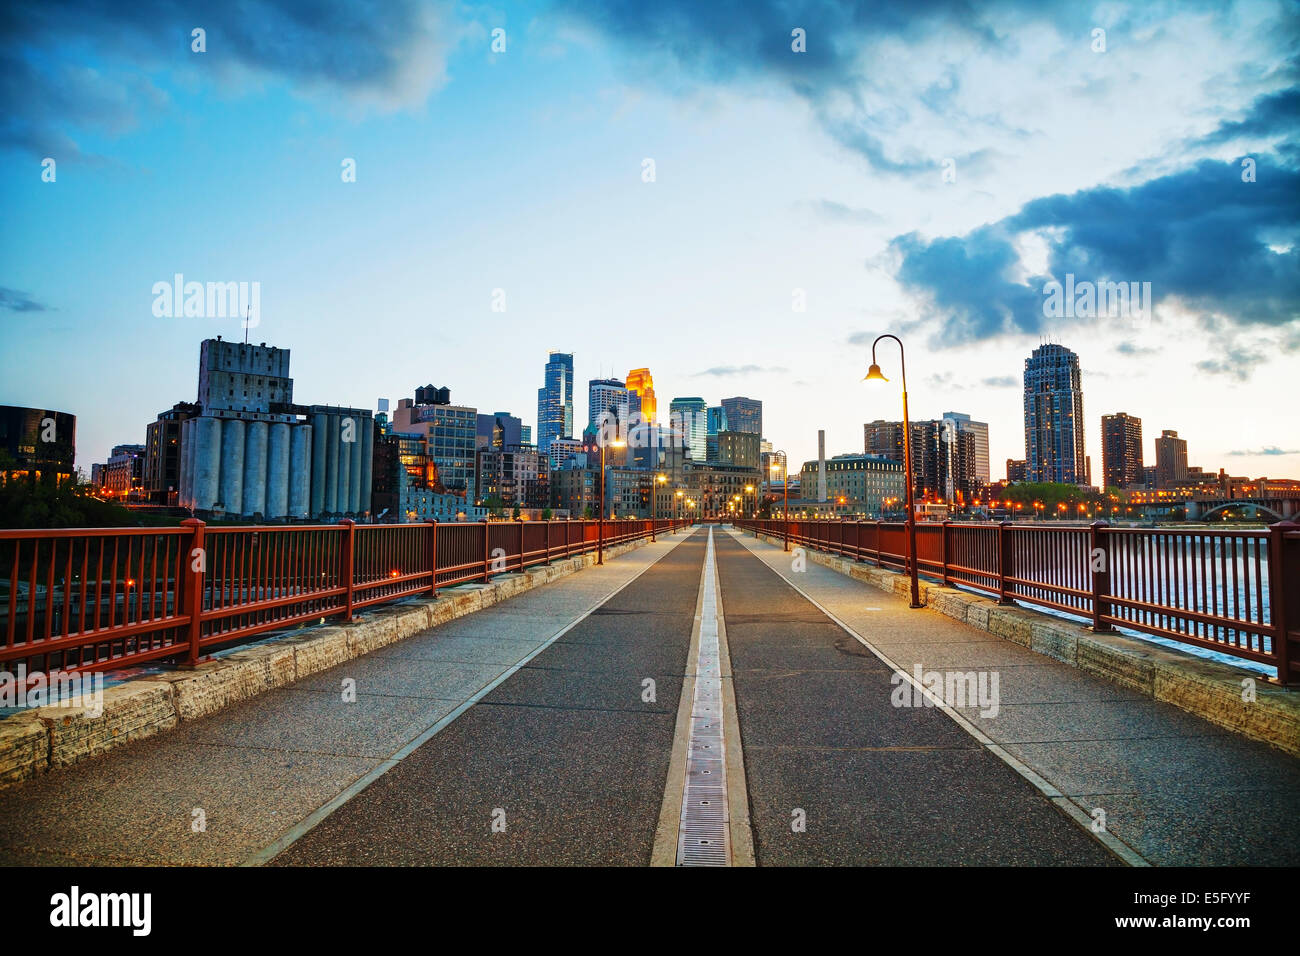 Downtown Minneapolis, Minnesota at night time as seen from the famous stone arch bridge - Stock Image